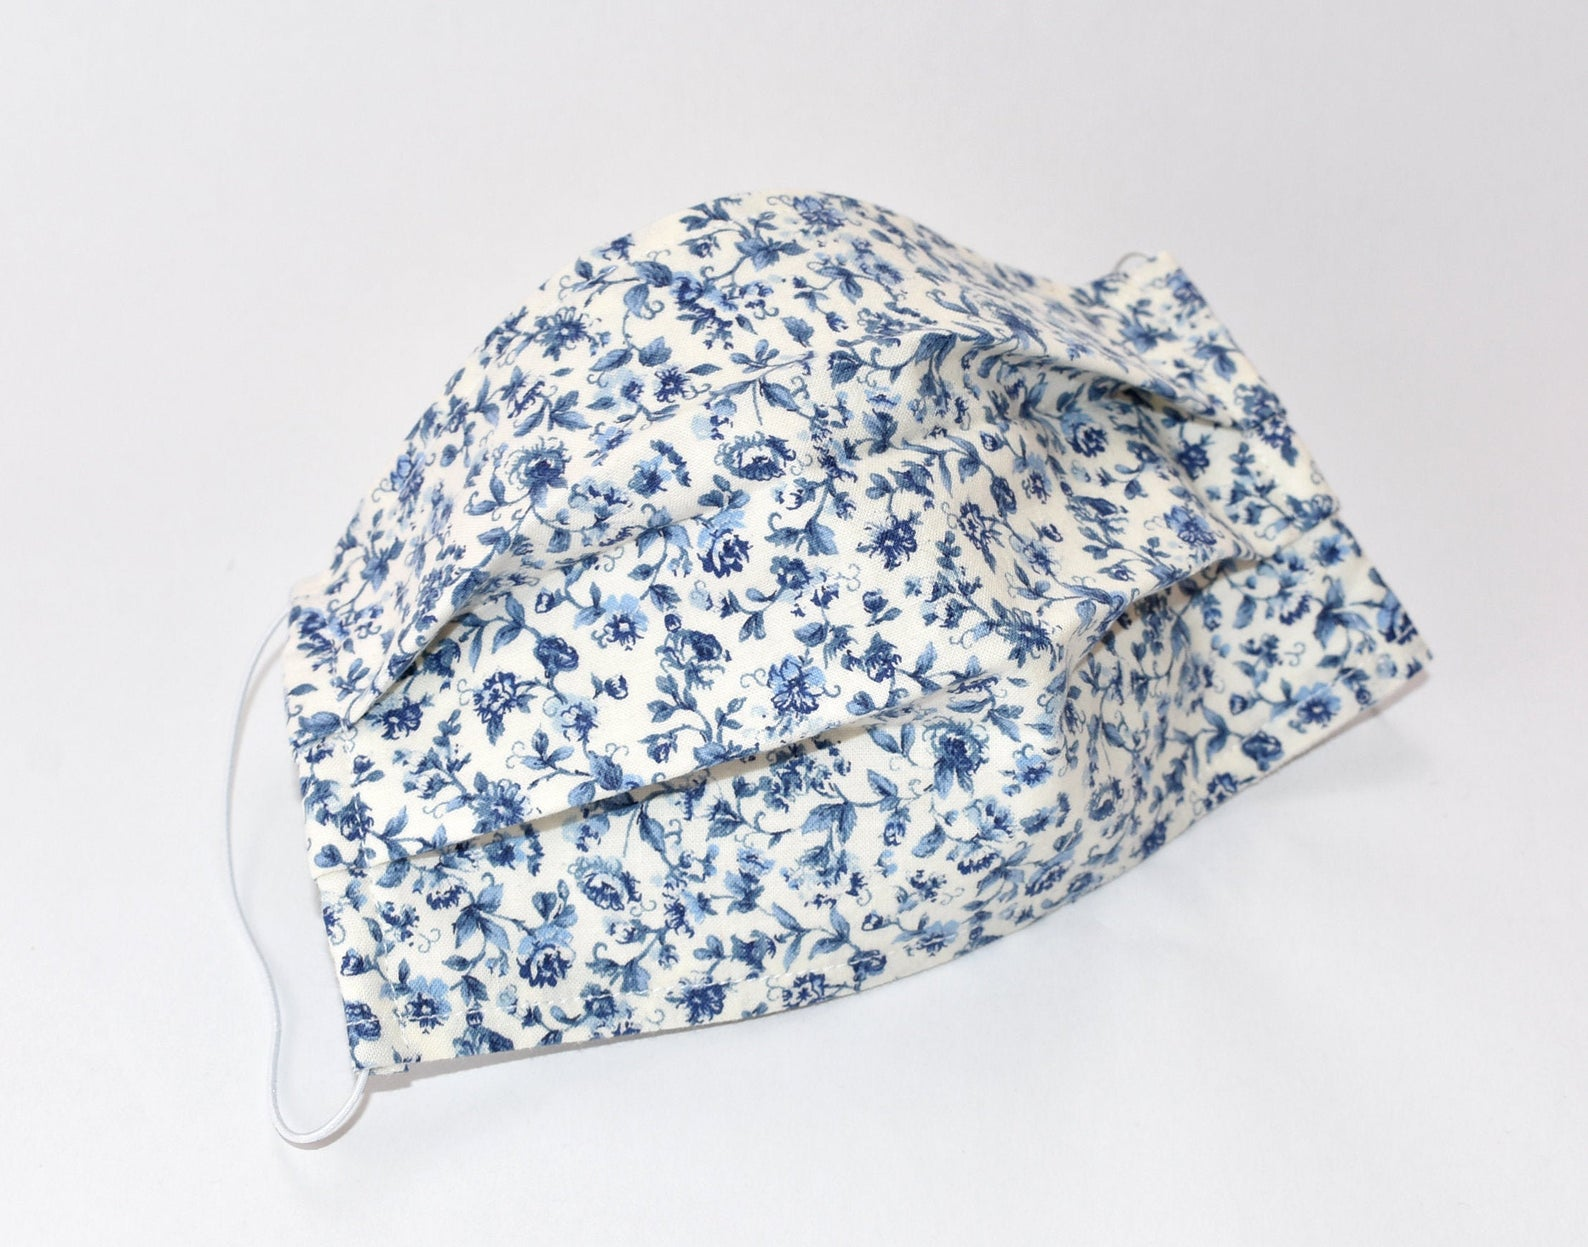 Naybees Nest Blue Flower Face Mask